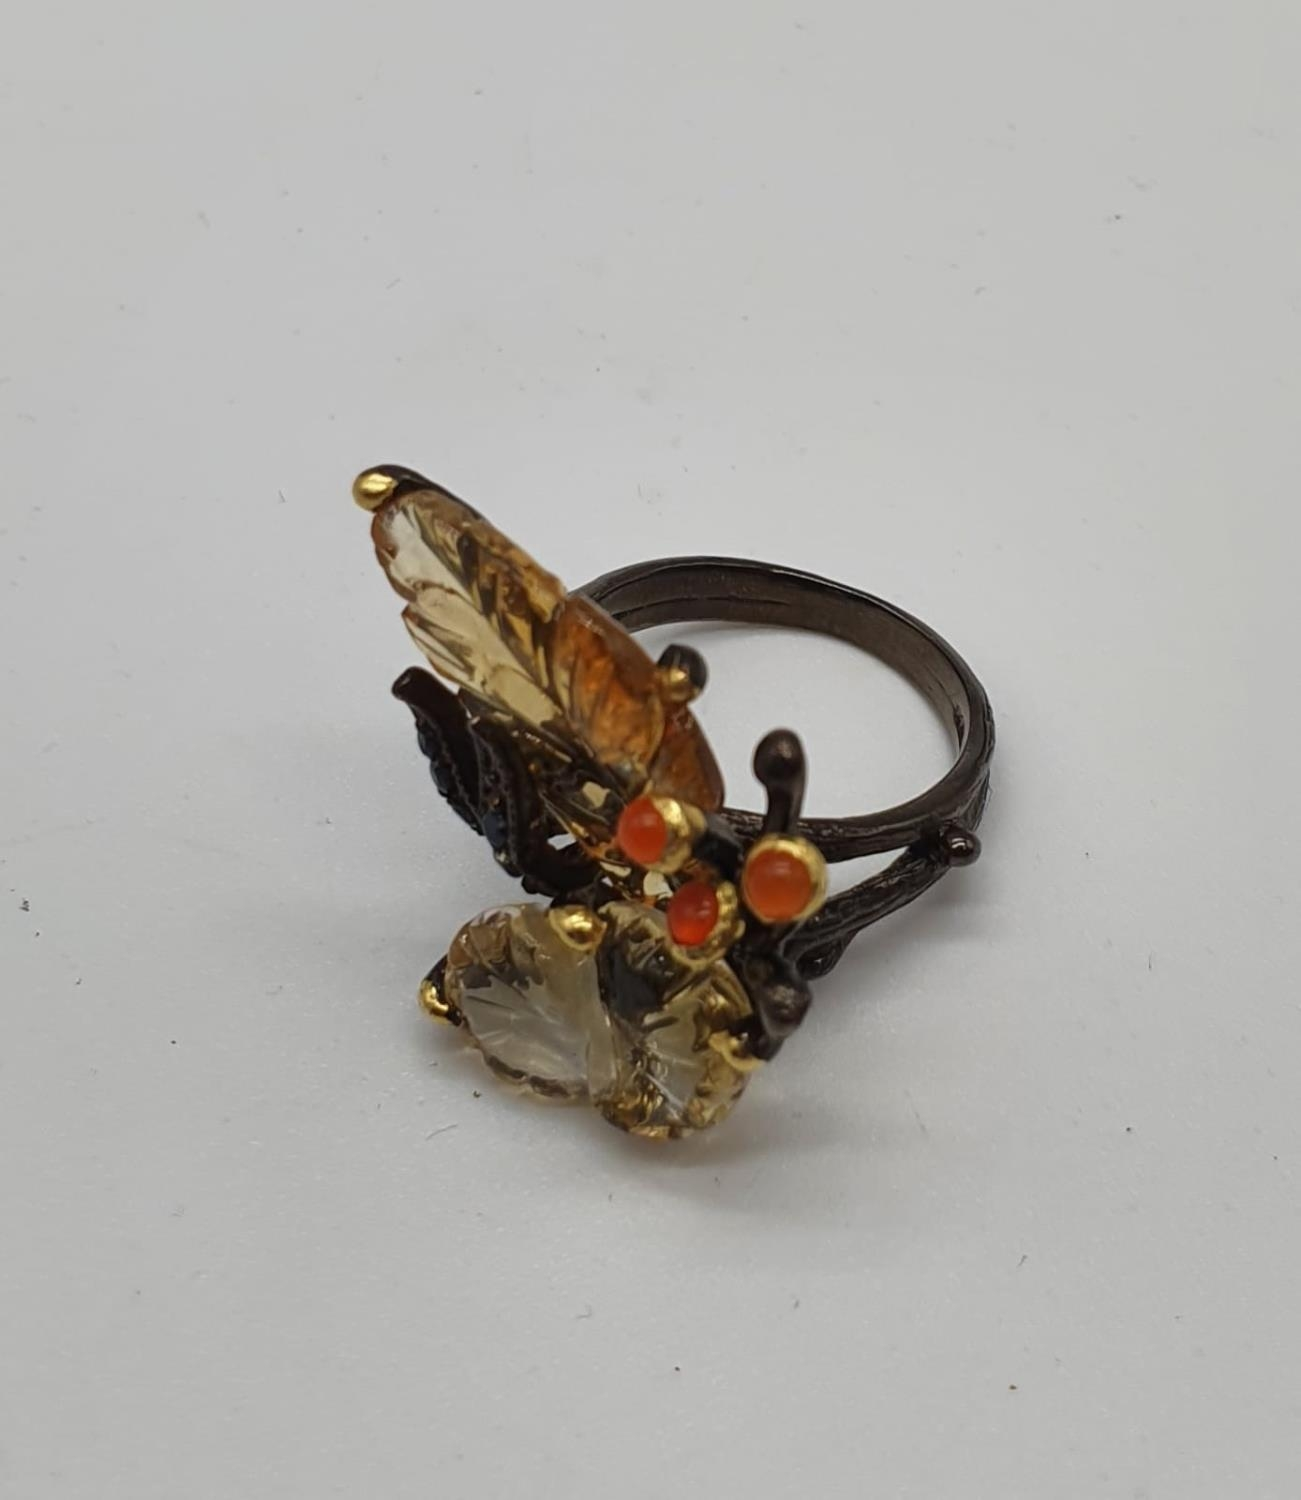 A unique Edwardian silver (unmarked) ring with carved semiprecious and precious stones (citrine, - Image 2 of 5